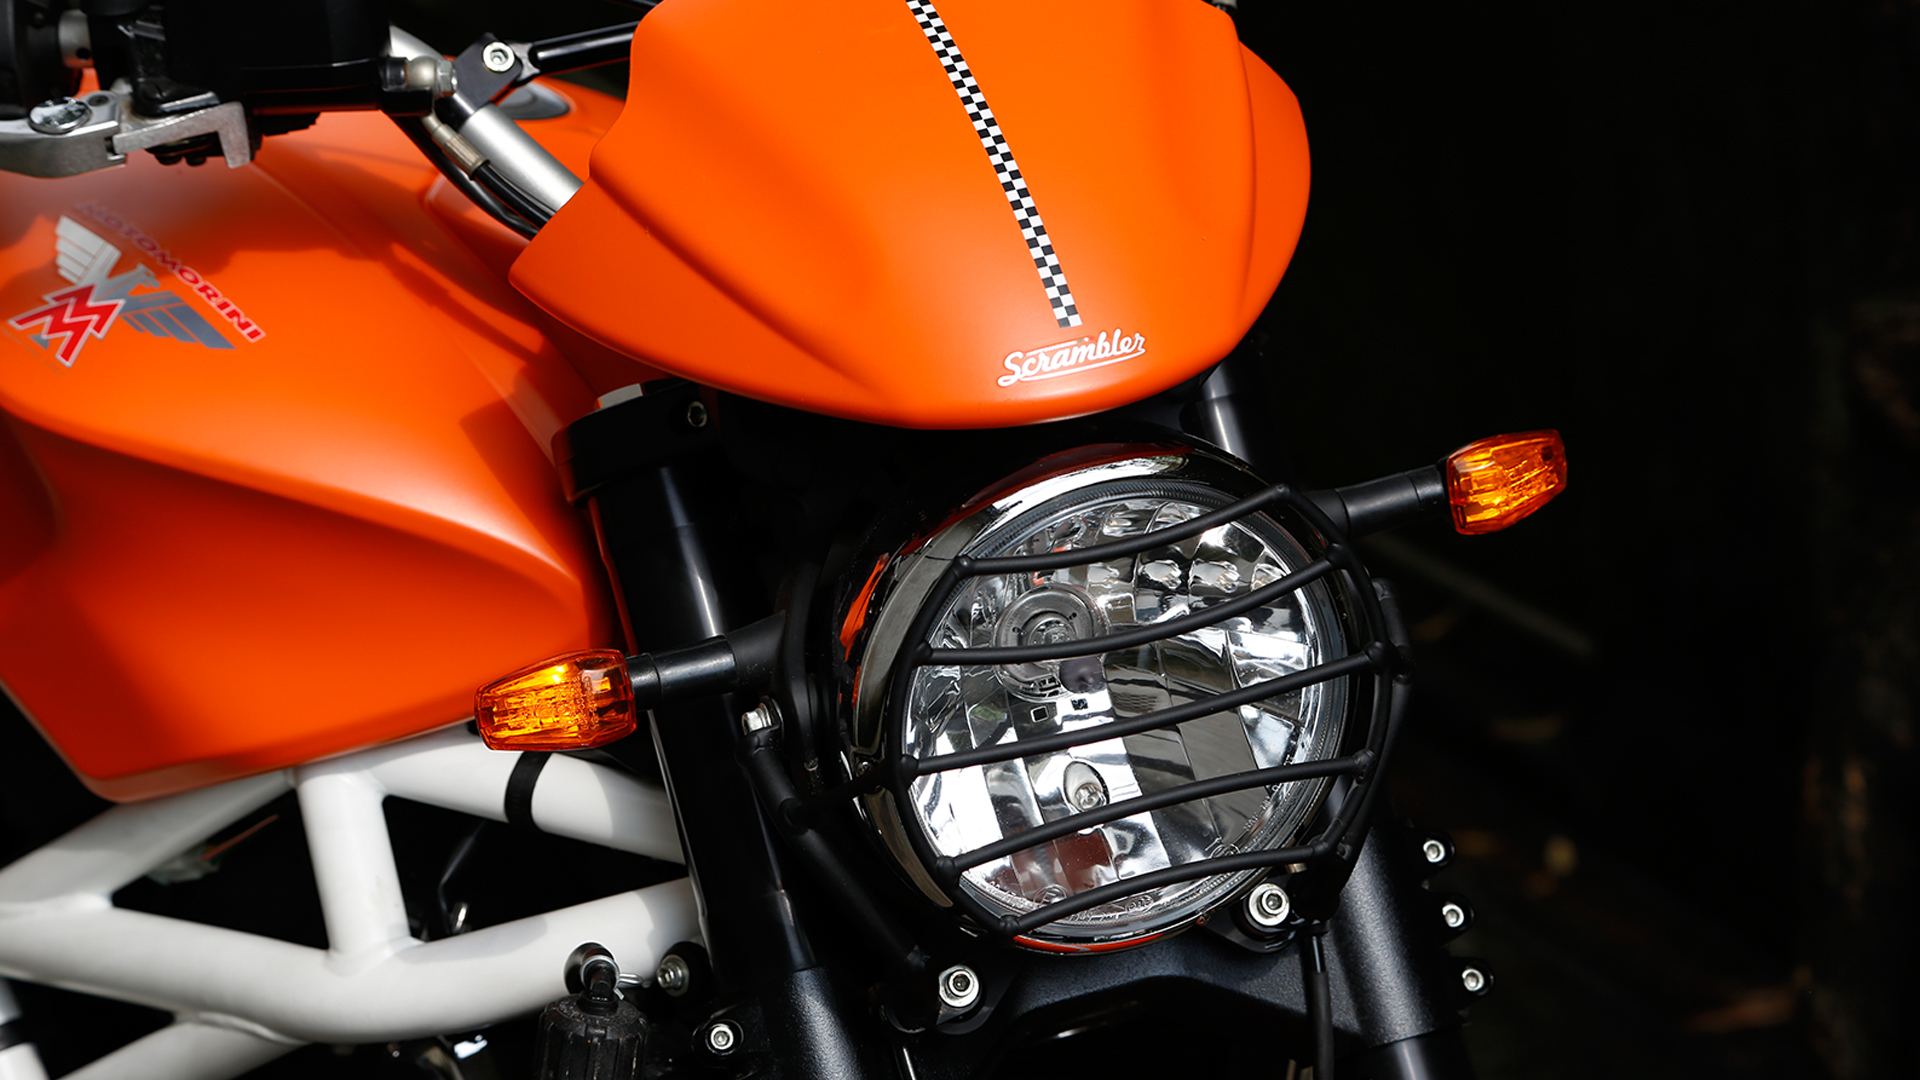 How Check Motorcycle Registration Number